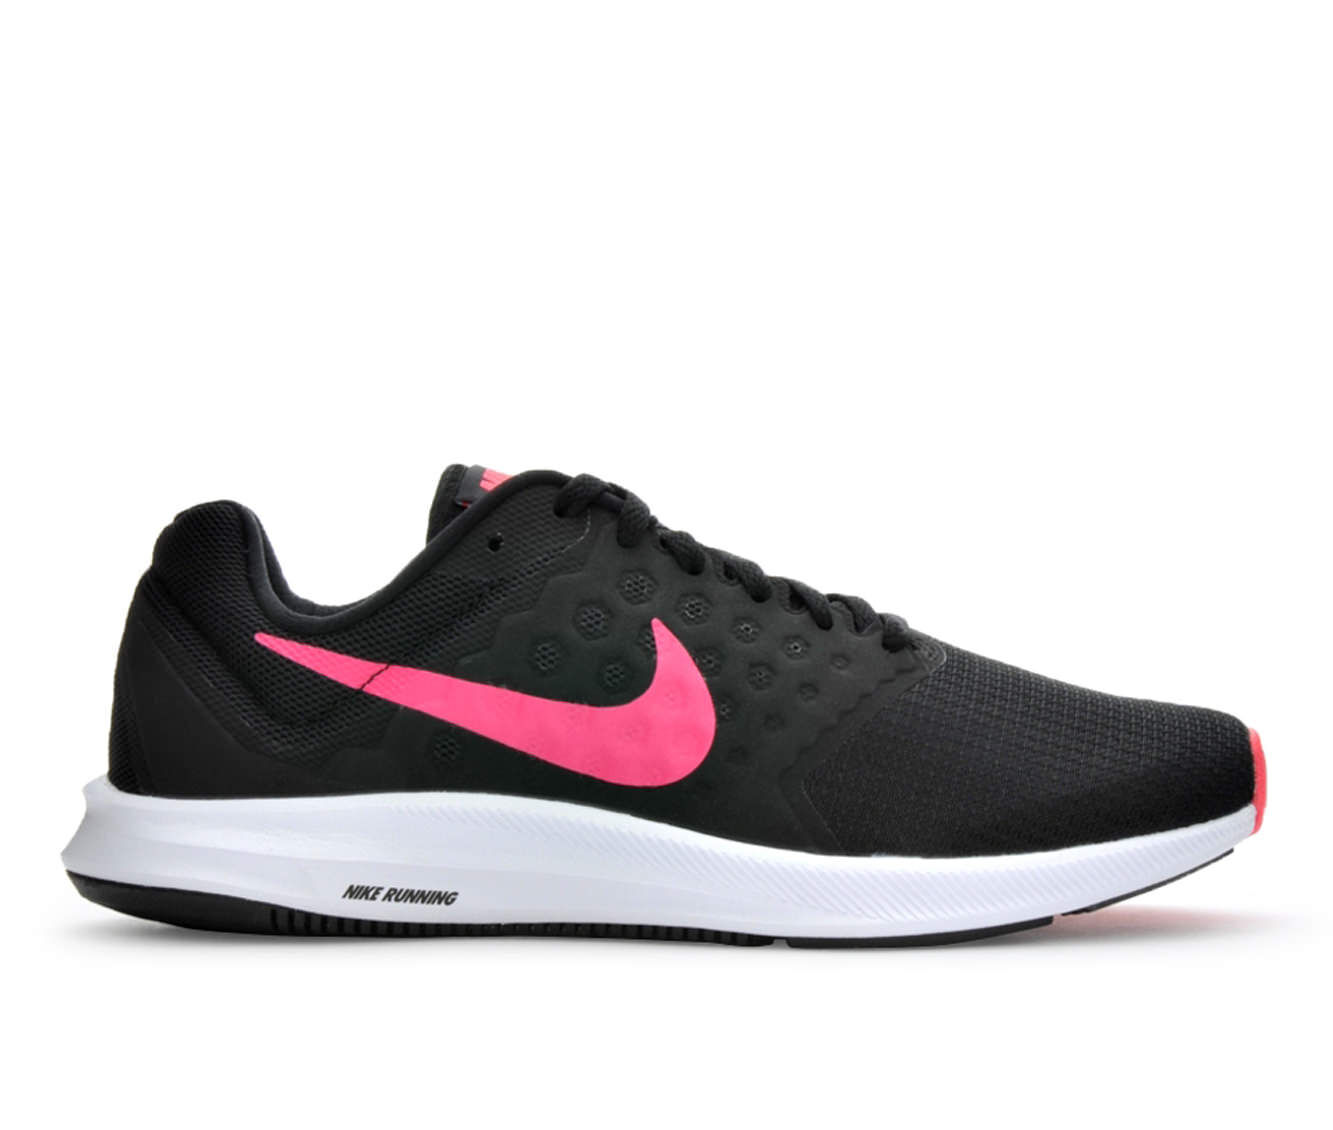 Best Buy Women's Nike Downshifter 7 Running Shoes Black/Pink/Wht